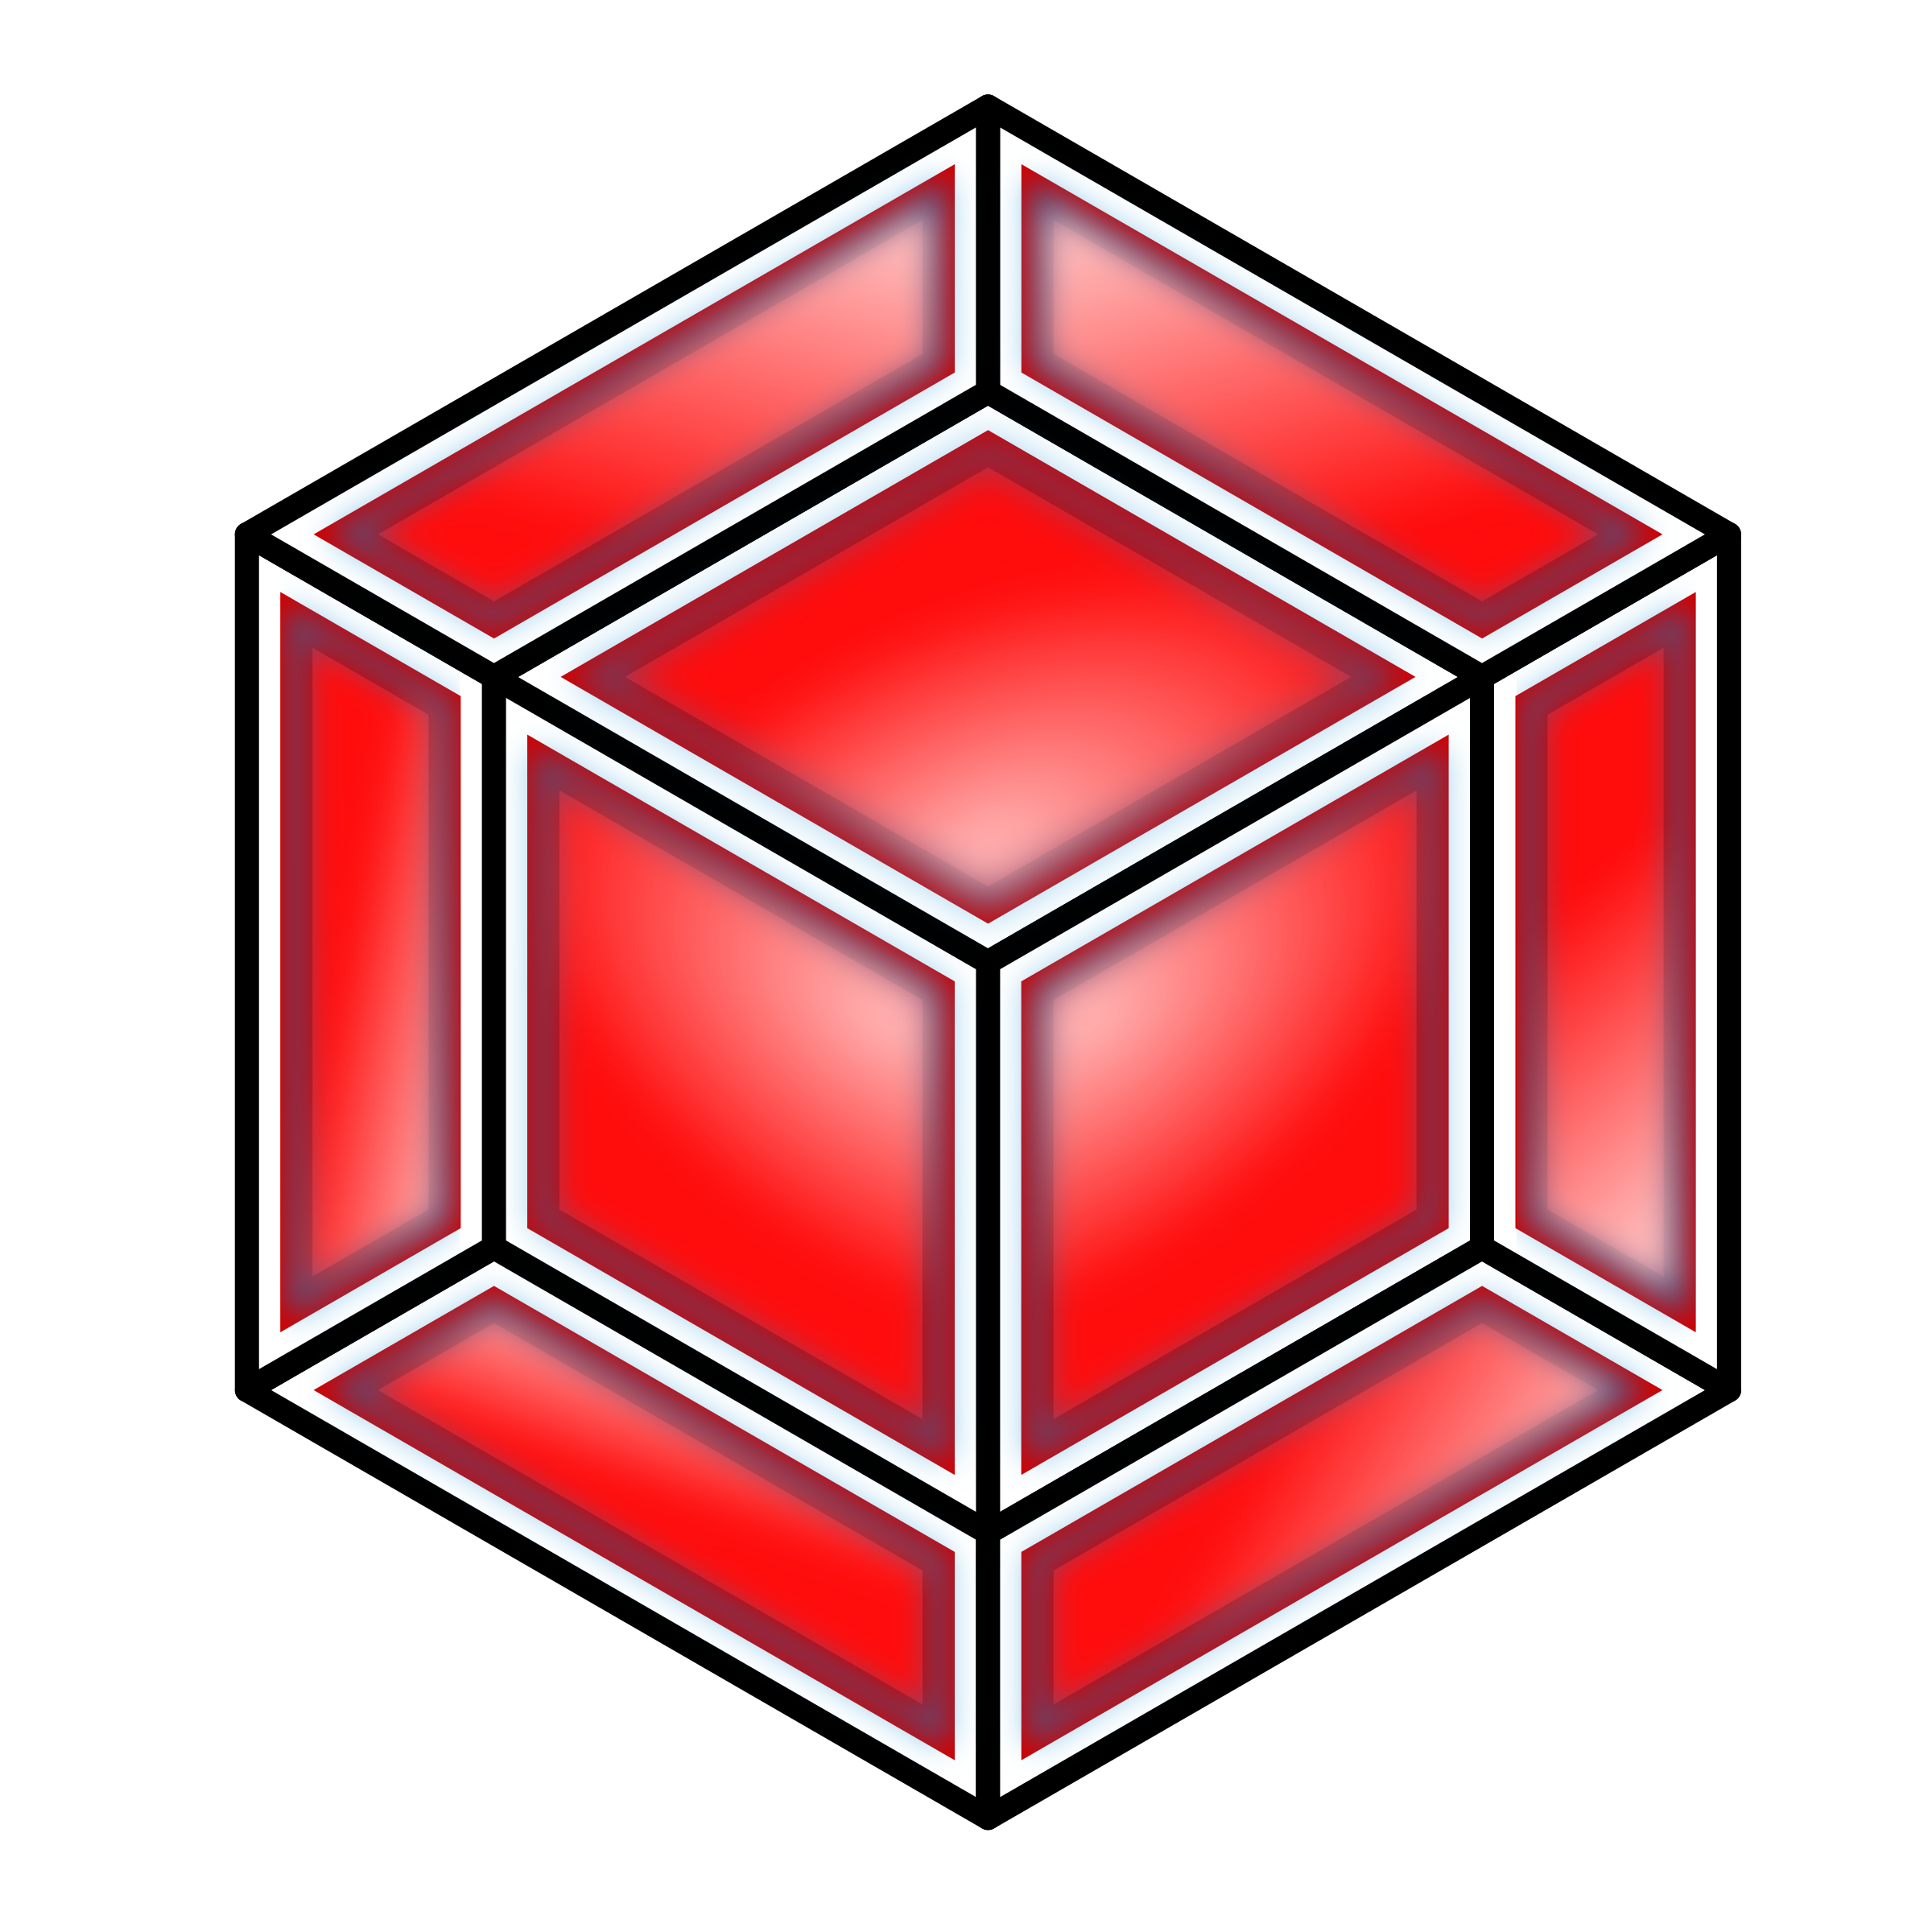 Hyper Cube, Red by bnielsen